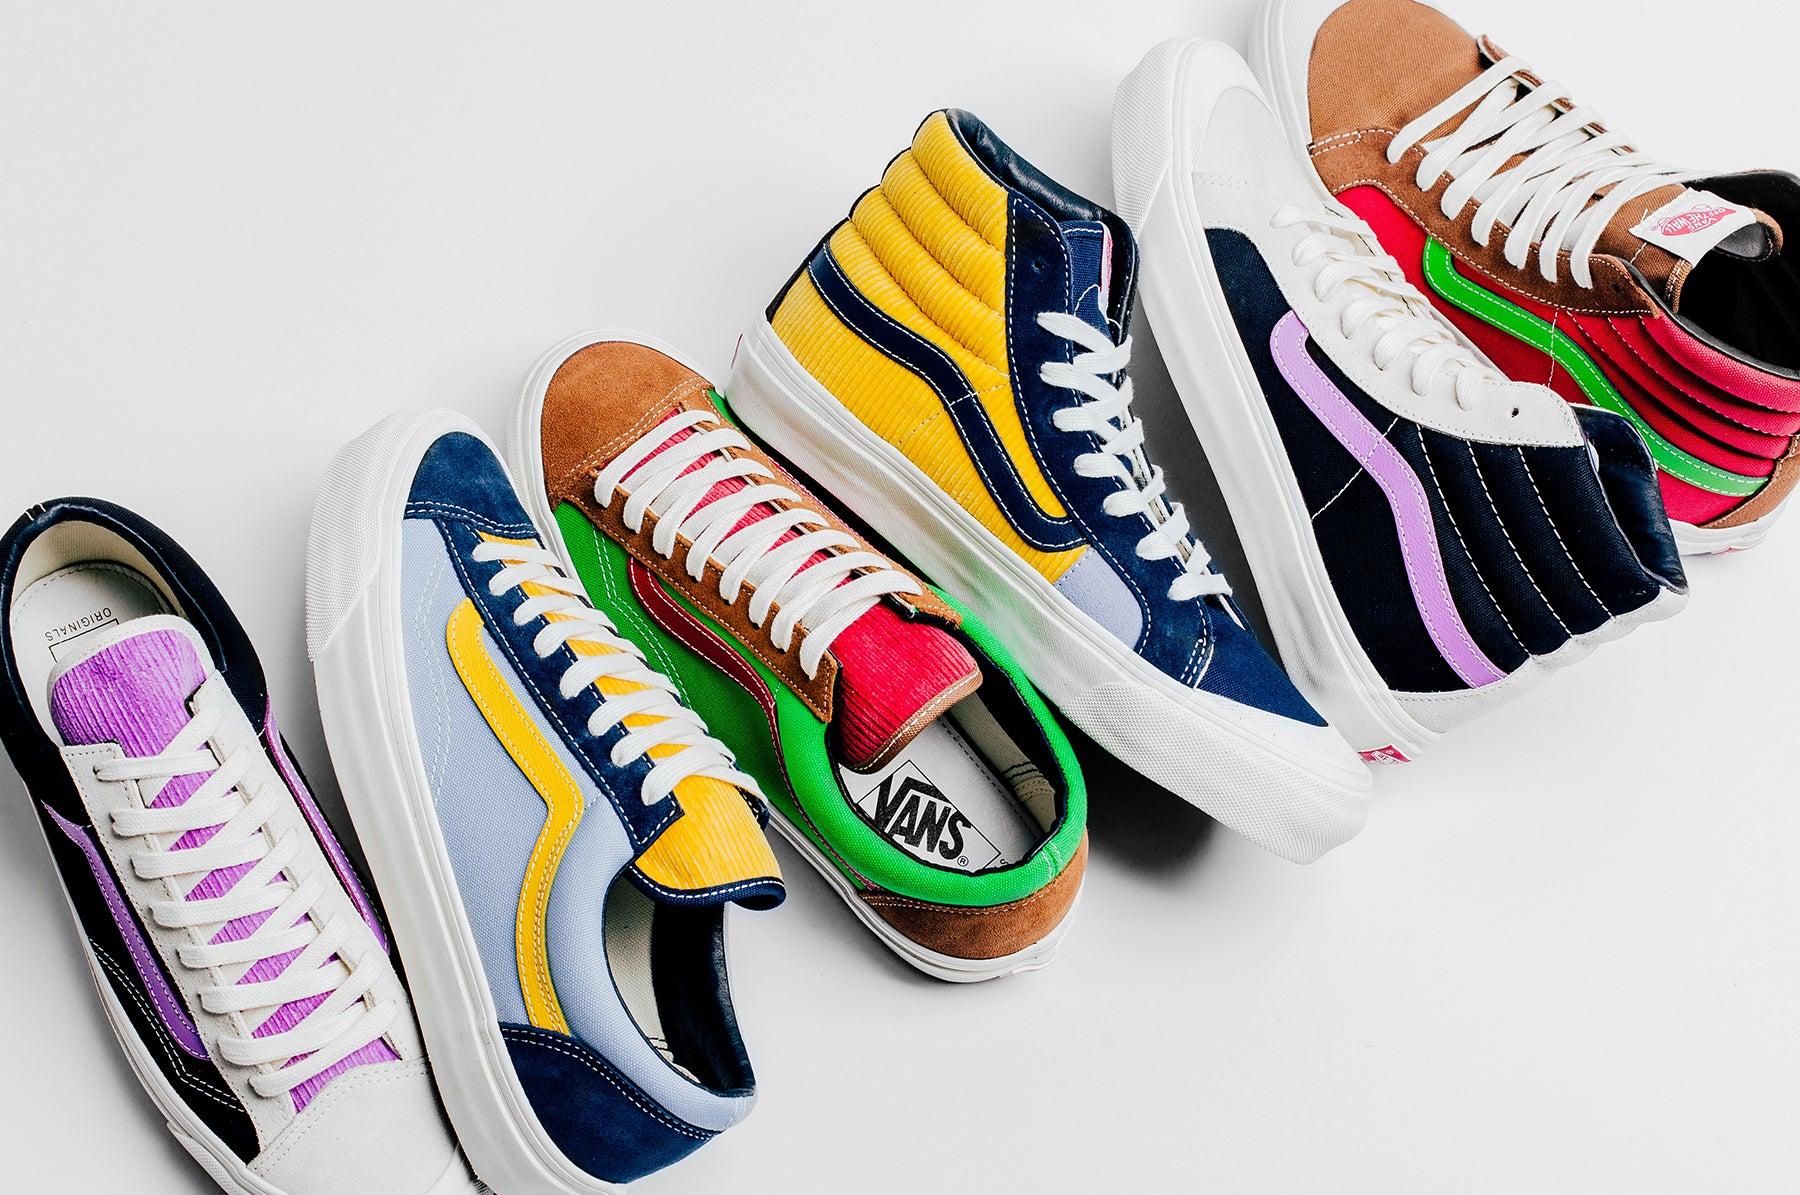 New Releases from Vans Vault Available